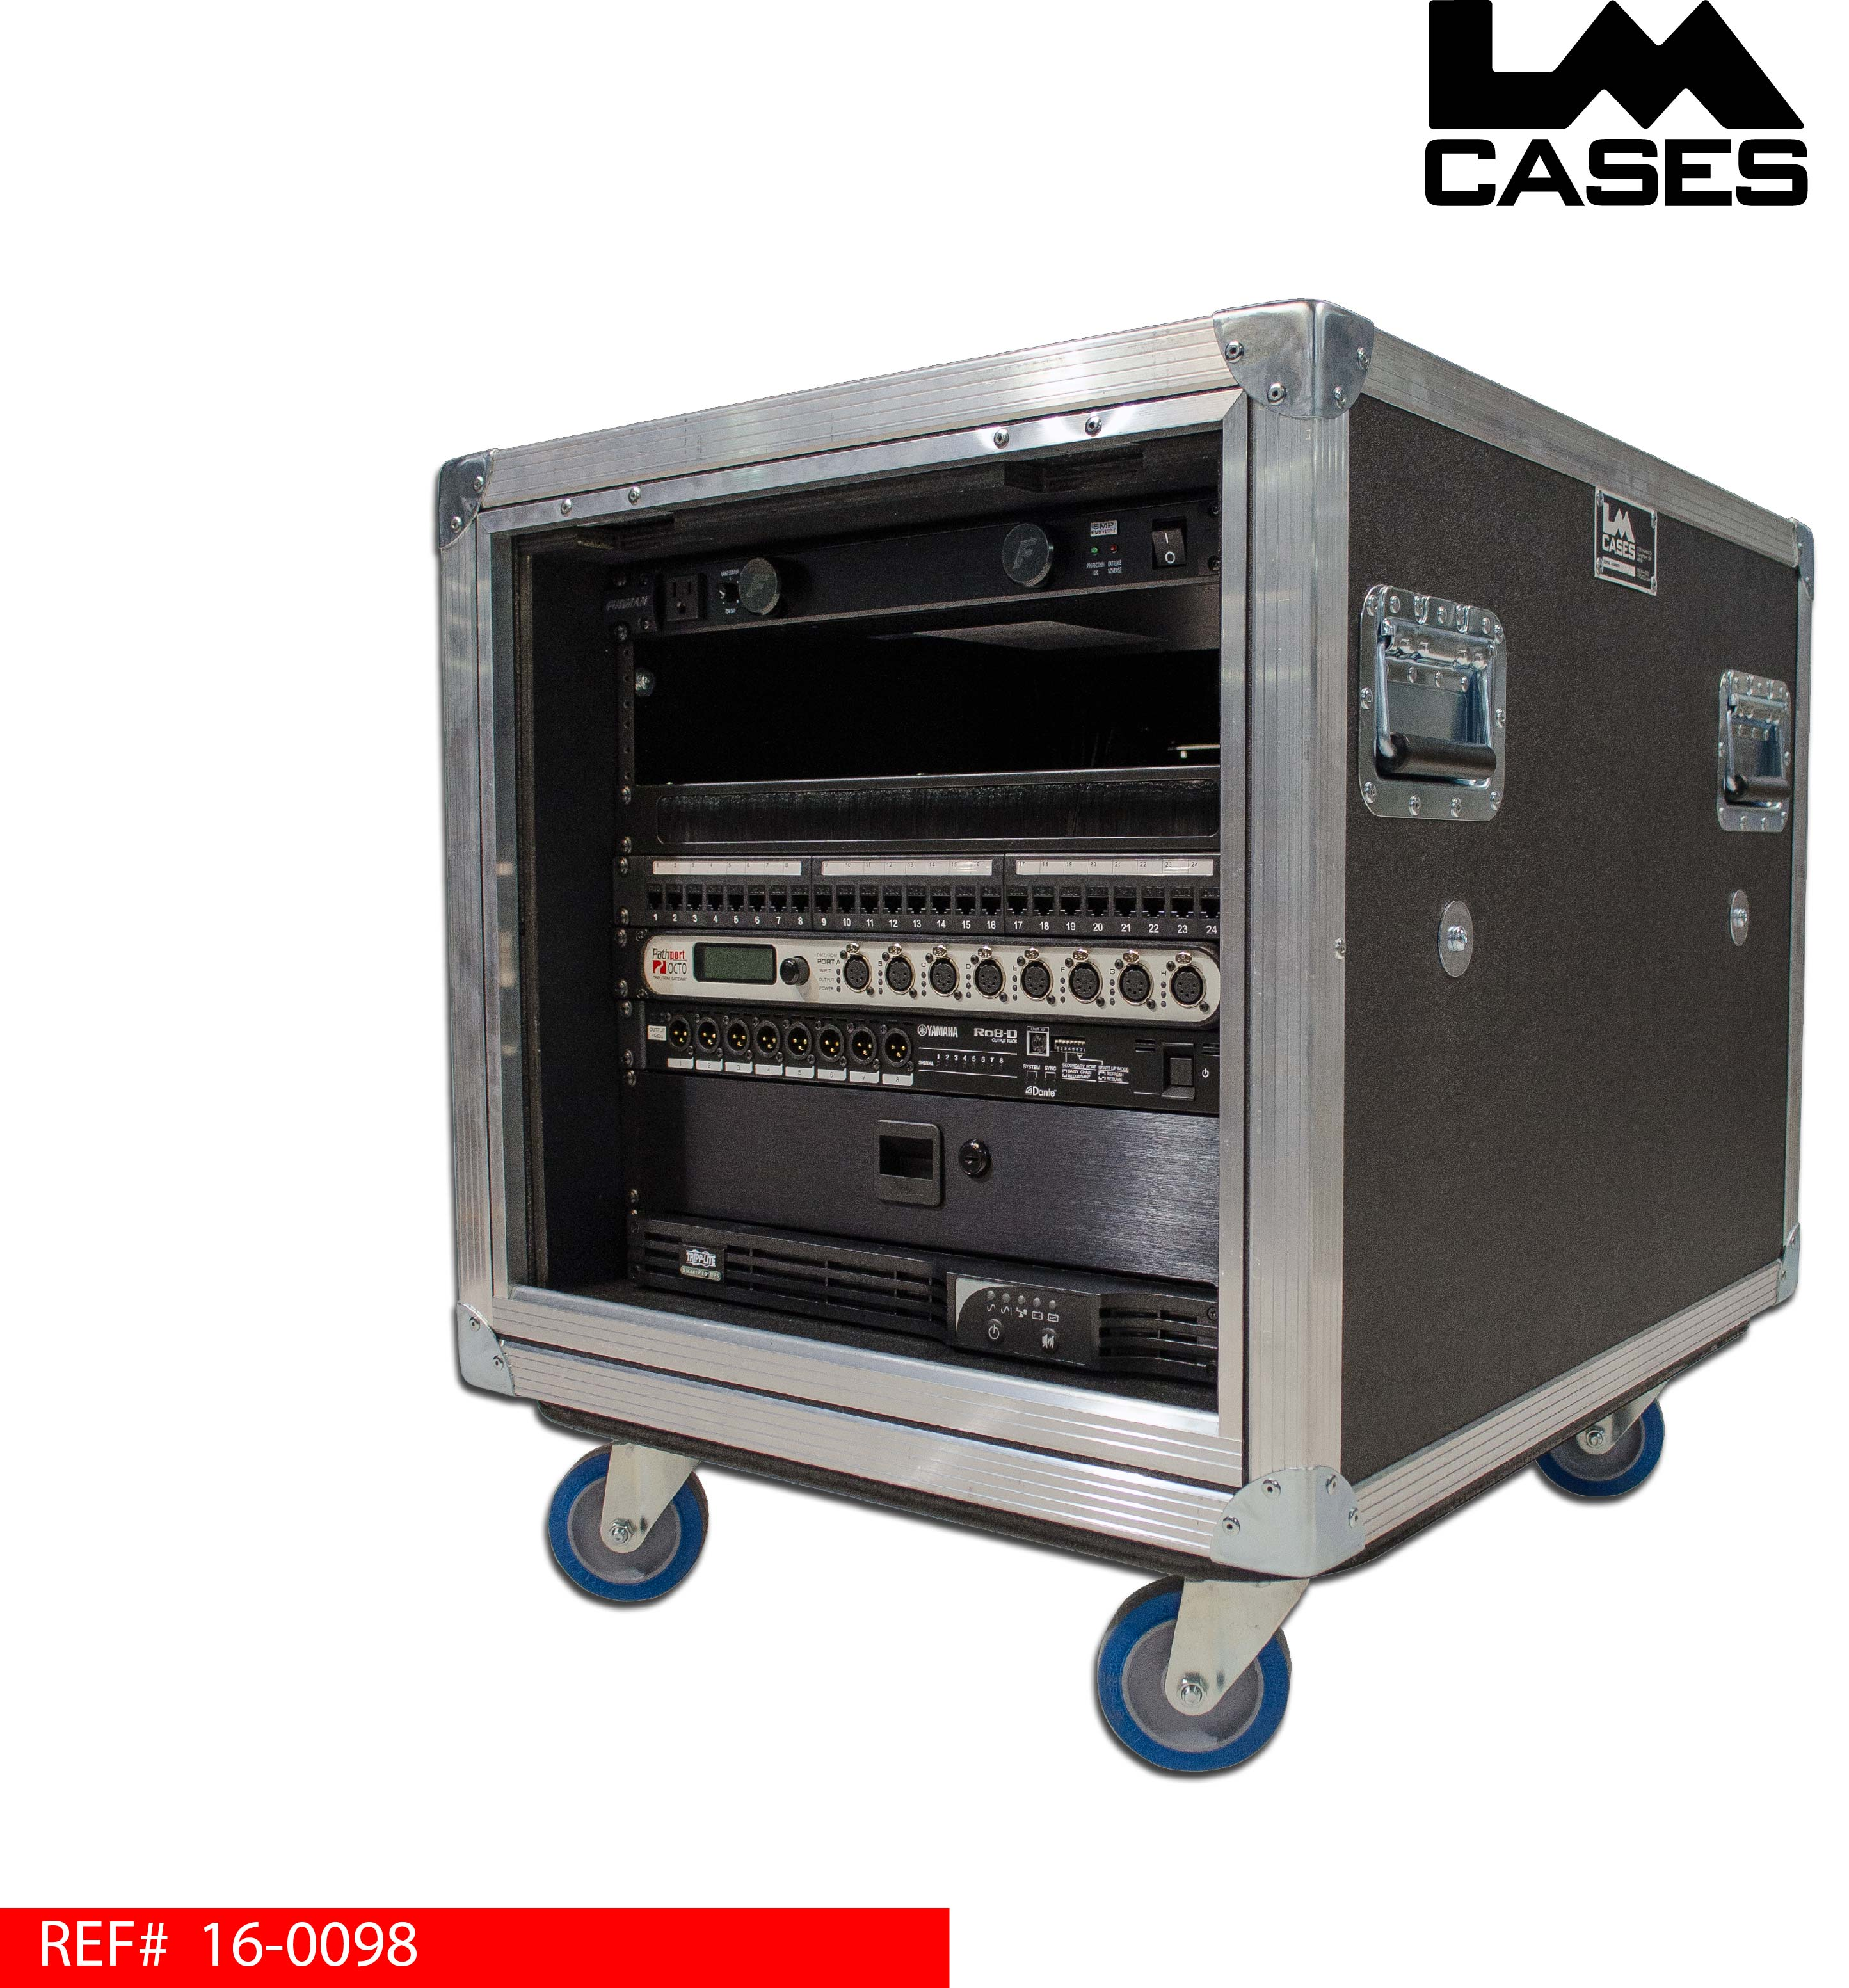 Portable Network Racks With Ups : Lm cases products